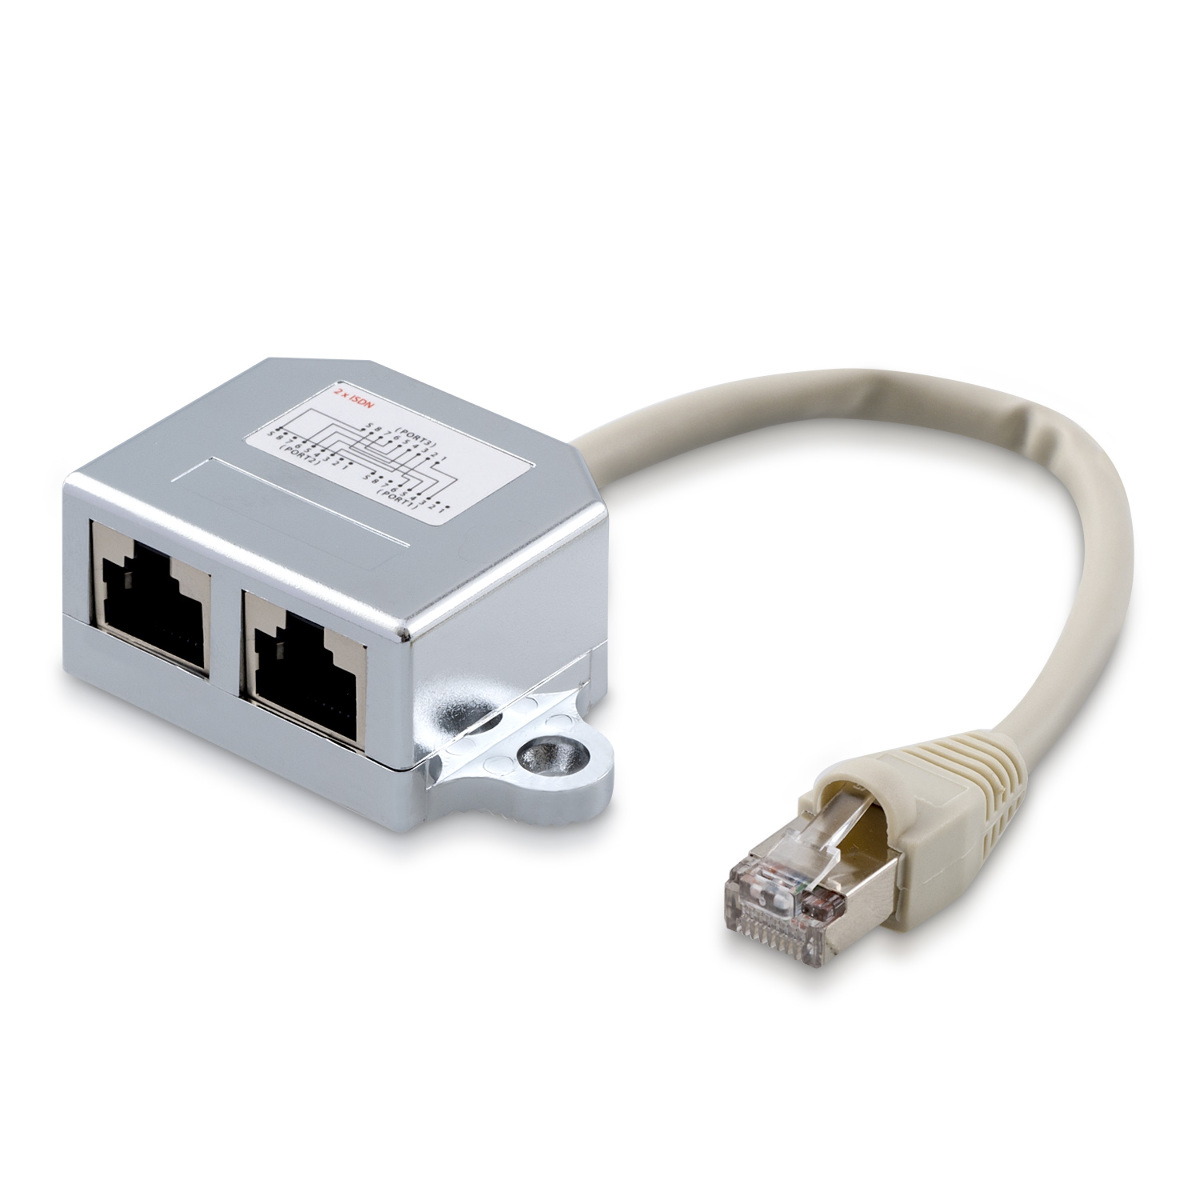 kwmobile network cable to x rj isdn network cable adapter kwmobile network cable to 2x rj45 isdn network cable adapter splitter